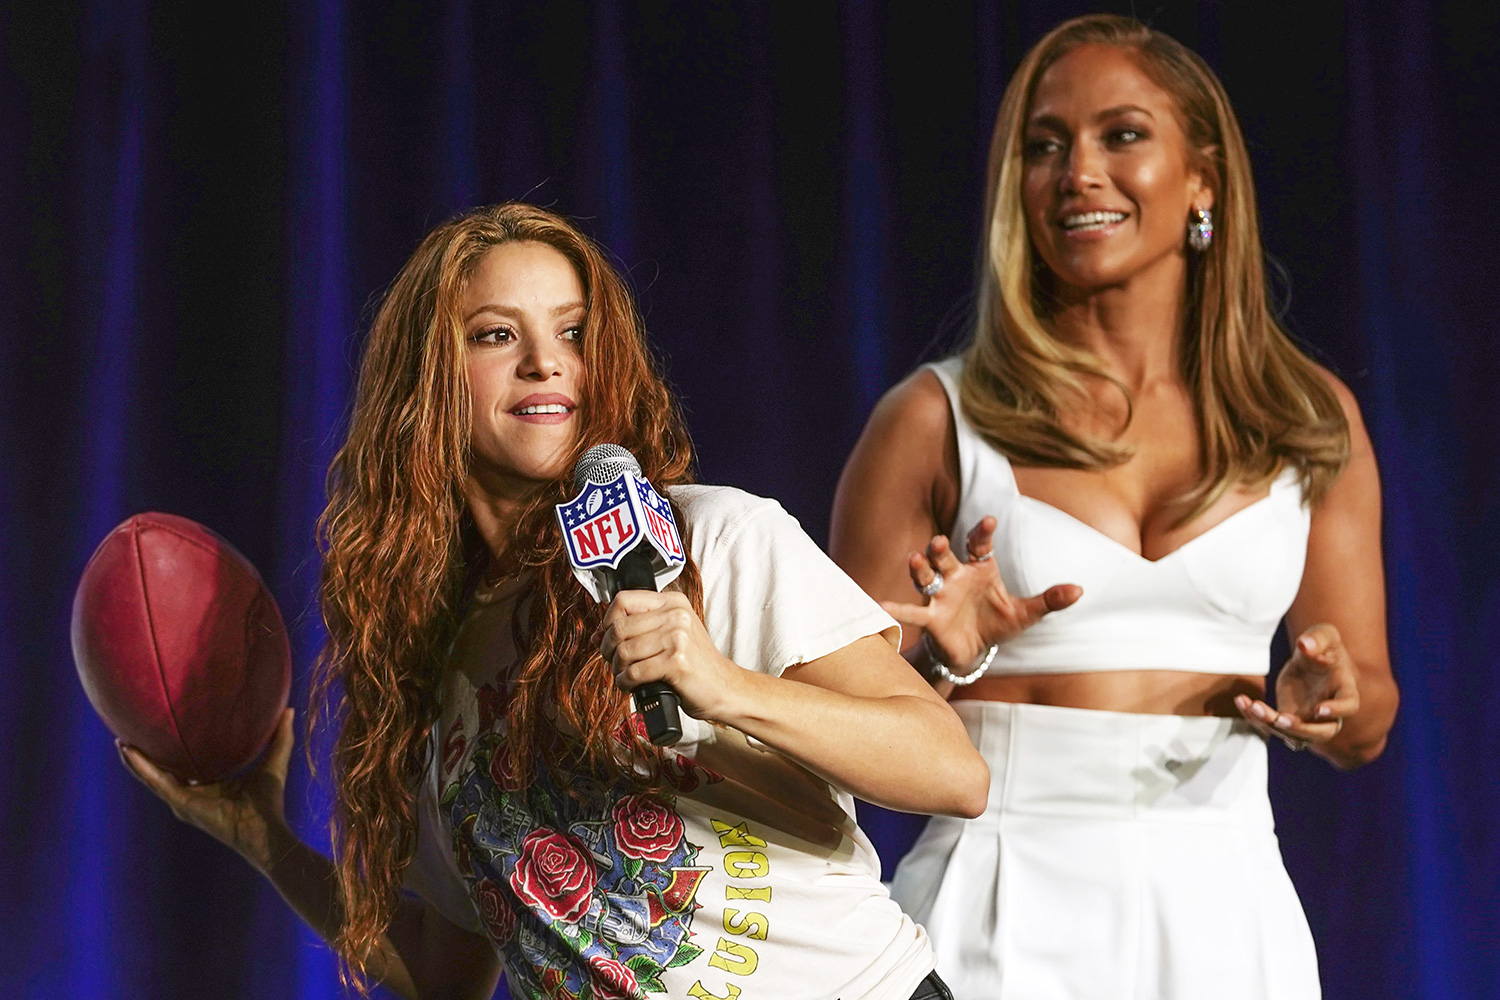 Pepsi Super Bowl LIV Halftime Show Performers Jennifer Lopez and Shakira Press Conference NFL Super Bowl LIV, Half Time Show Press Conference, Miami, Florida, USA - 30 Jan 2020